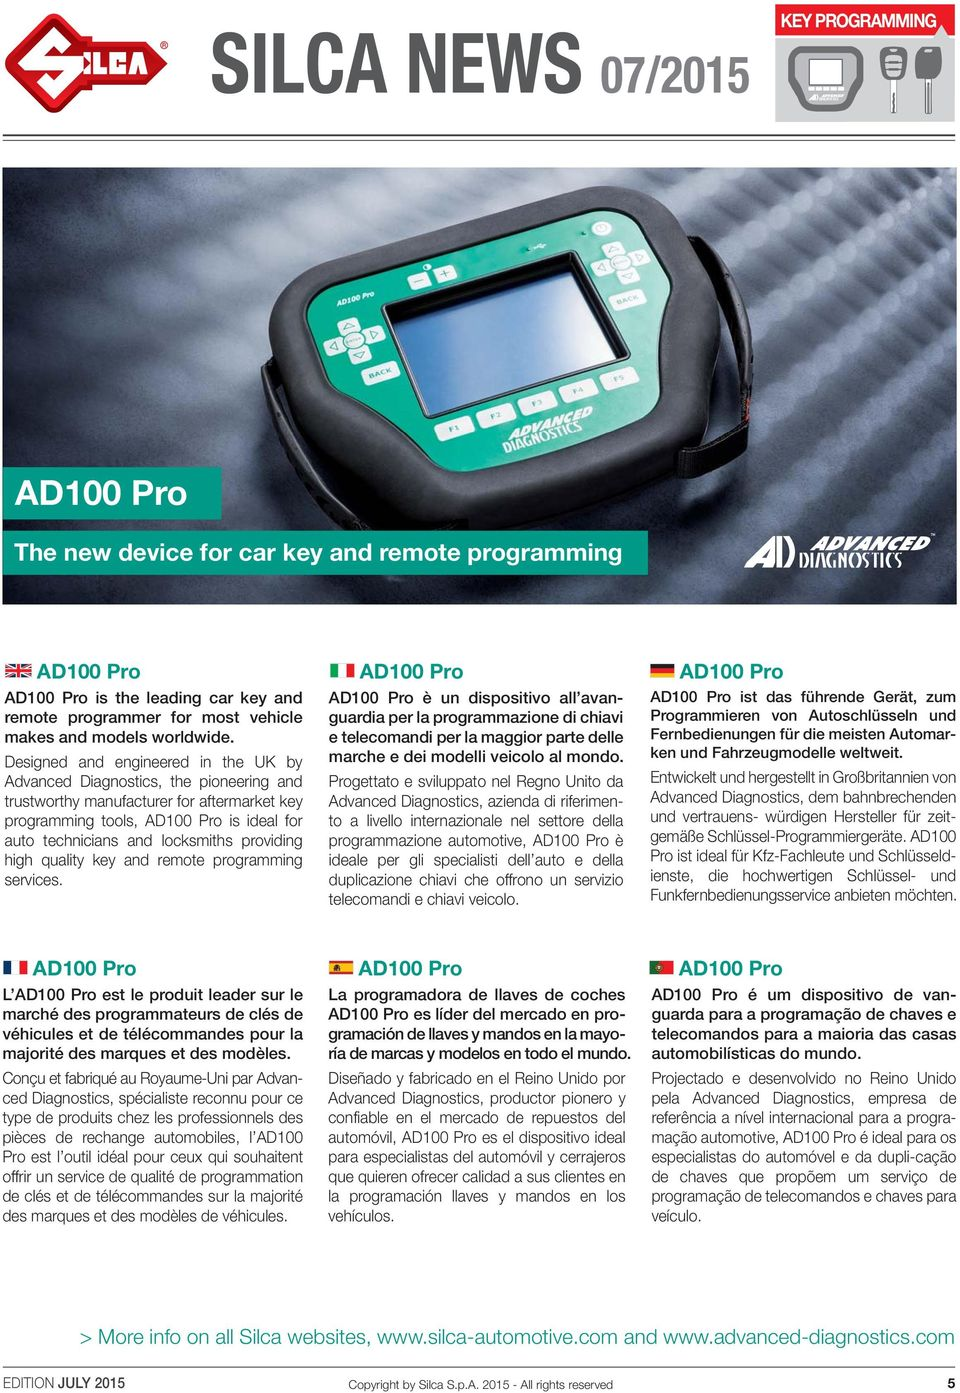 ADVANCED DIAGNOSTICS AD100 PRO DRIVER FOR WINDOWS 8